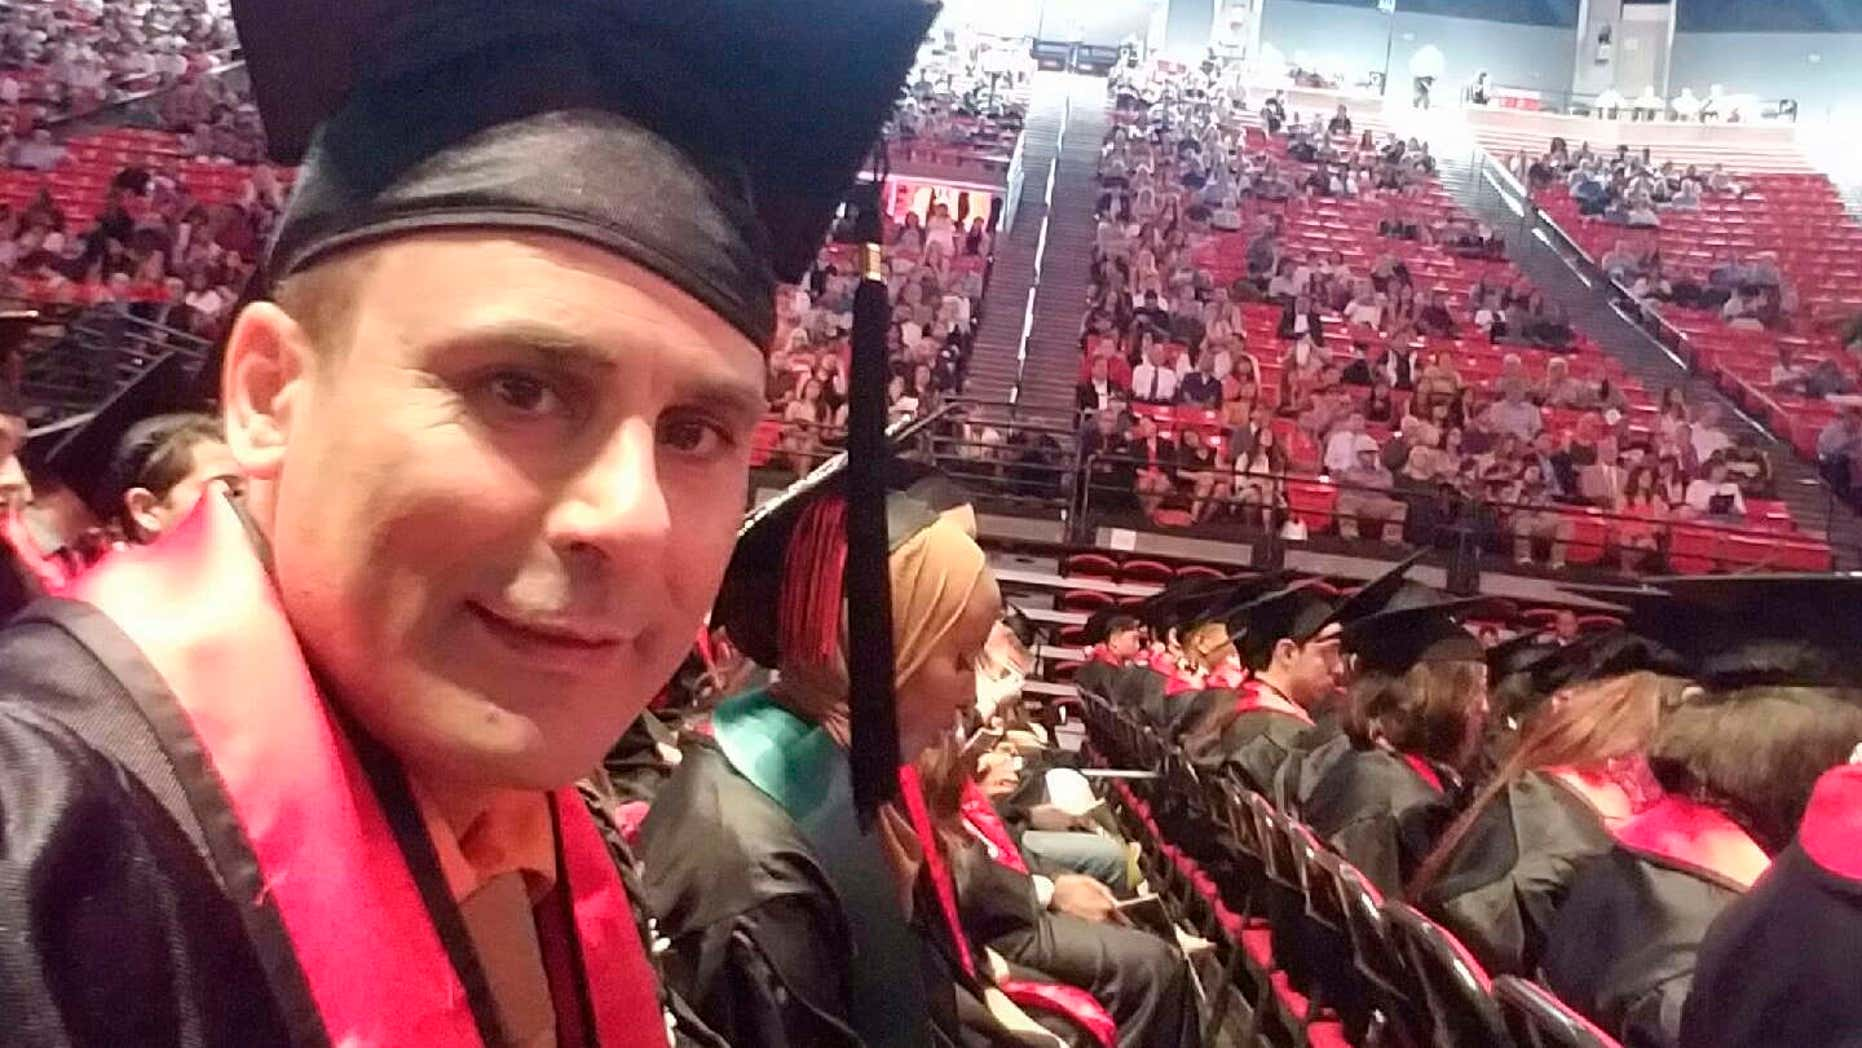 In this May 2016 photo released by a family member shows Robin Shahini during his International Security and Conflict Resolution San Diego State University graduation ceremony in San Diego, Calif.